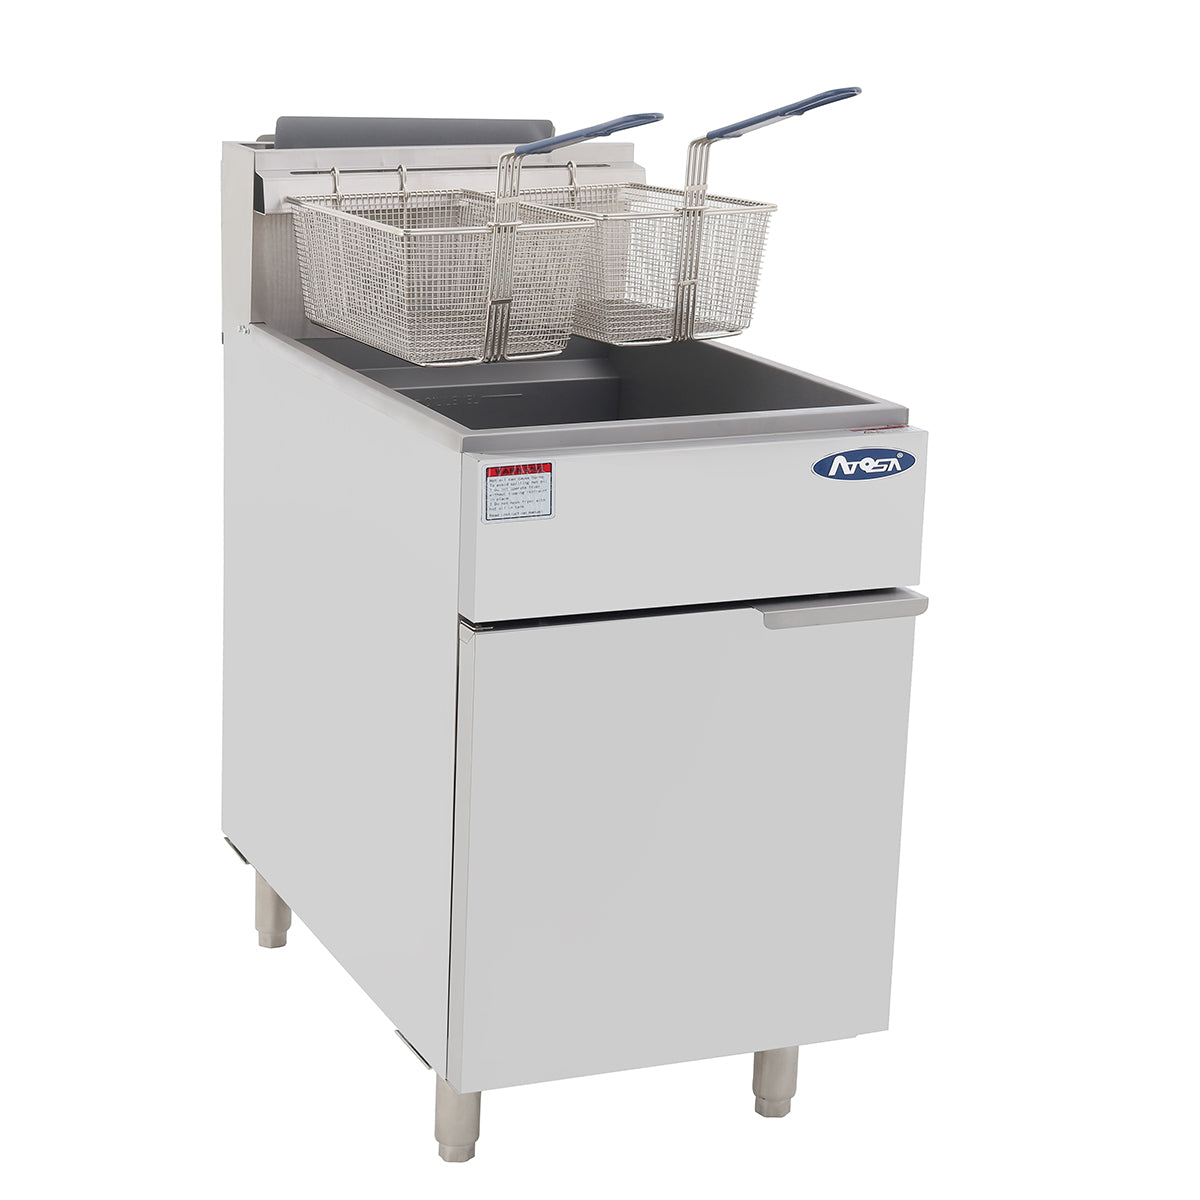 ATOSA ATFS-75 HD 75lb S/S Commercial Kitchen Natural Gas Deep Fryer